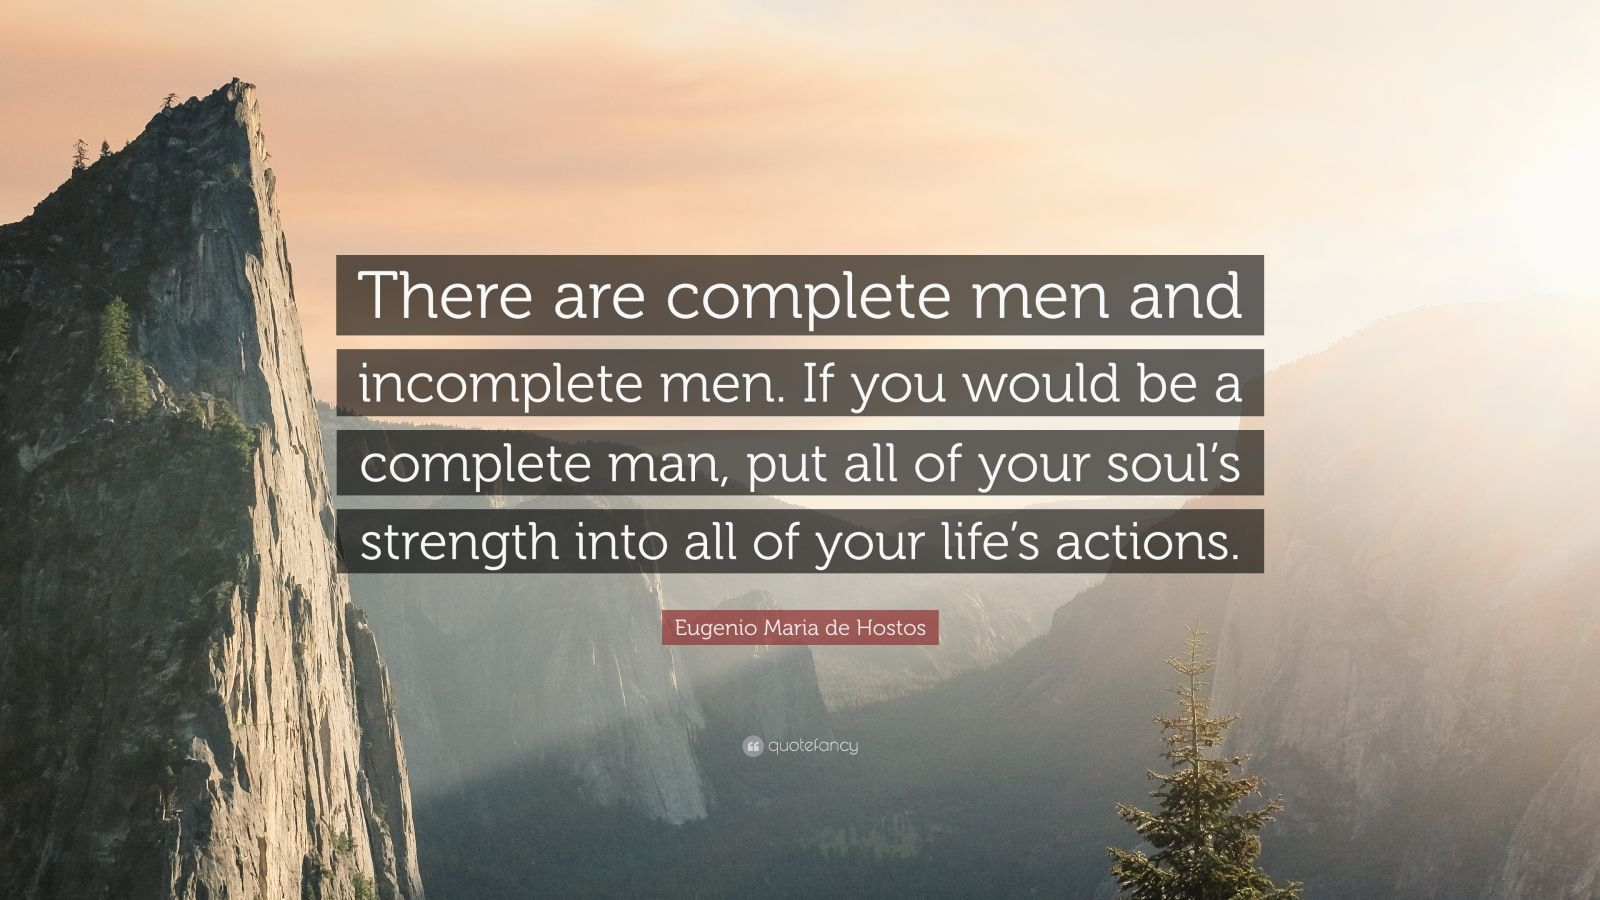 """Eugenio Maria de Hostos Quote: """"There are complete men and incomplete men. If you would be a complete man, put all of your soul's strength into all of your life's actions."""""""